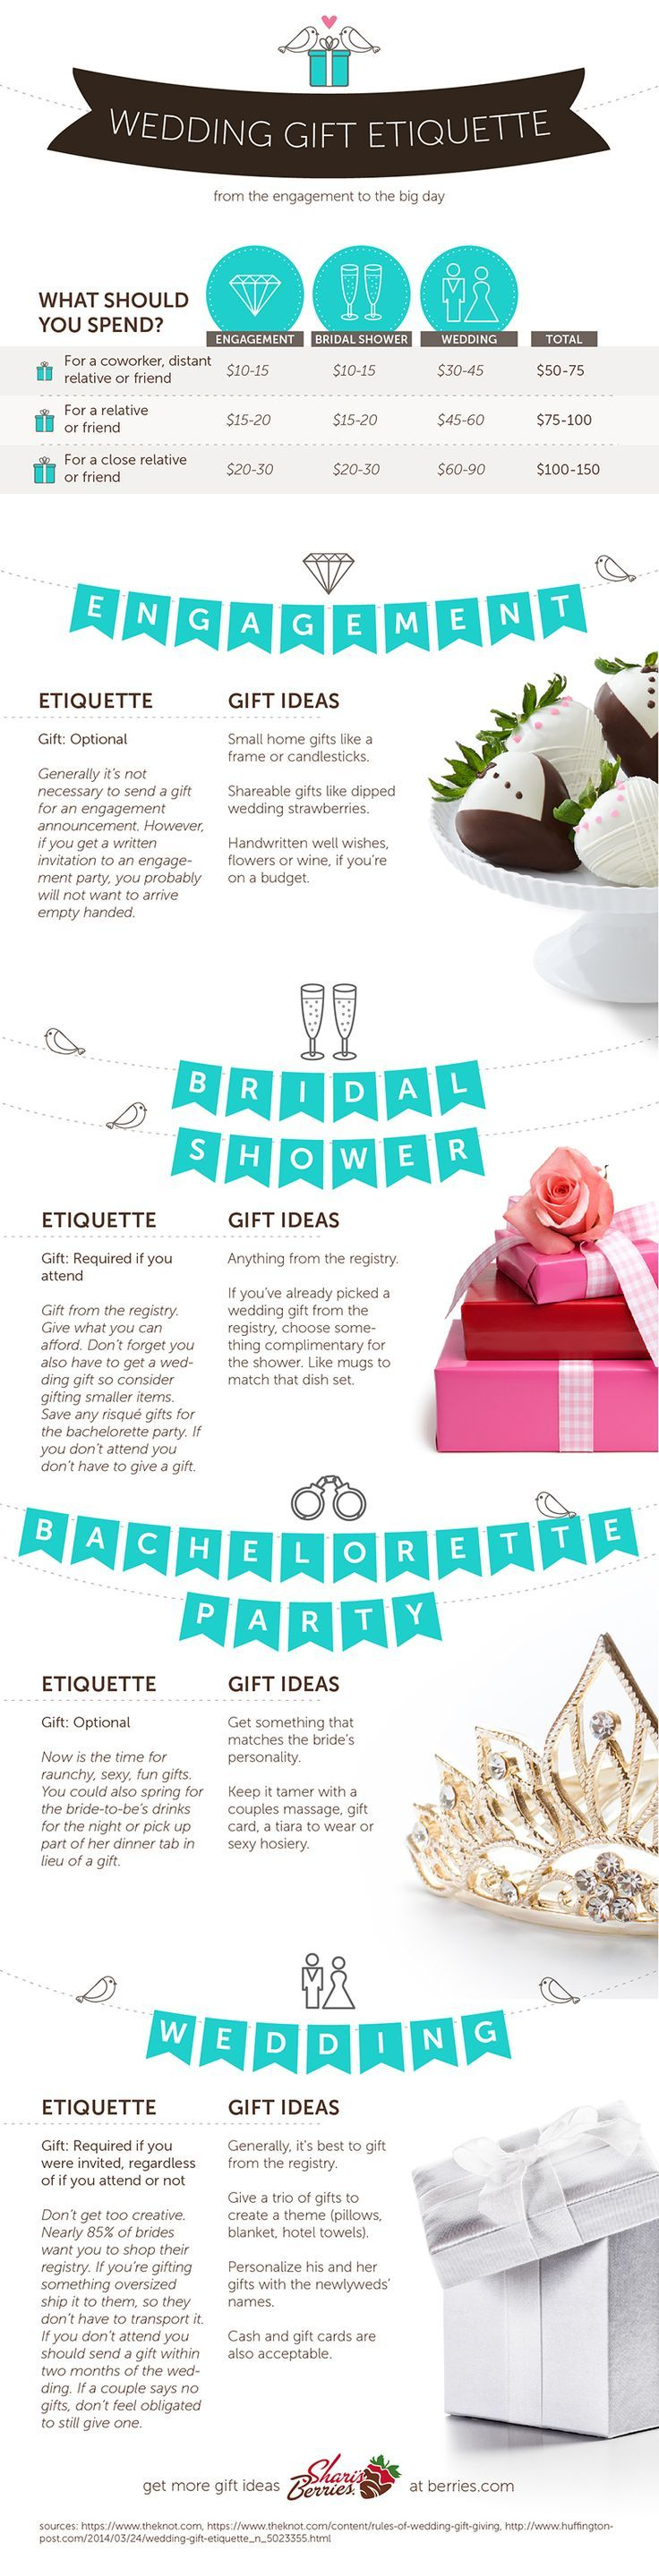 Wedding Gift Etiquette Time Frame : Wedding Gift Guide and Etiquette - Do I need a gift for the bridal ...